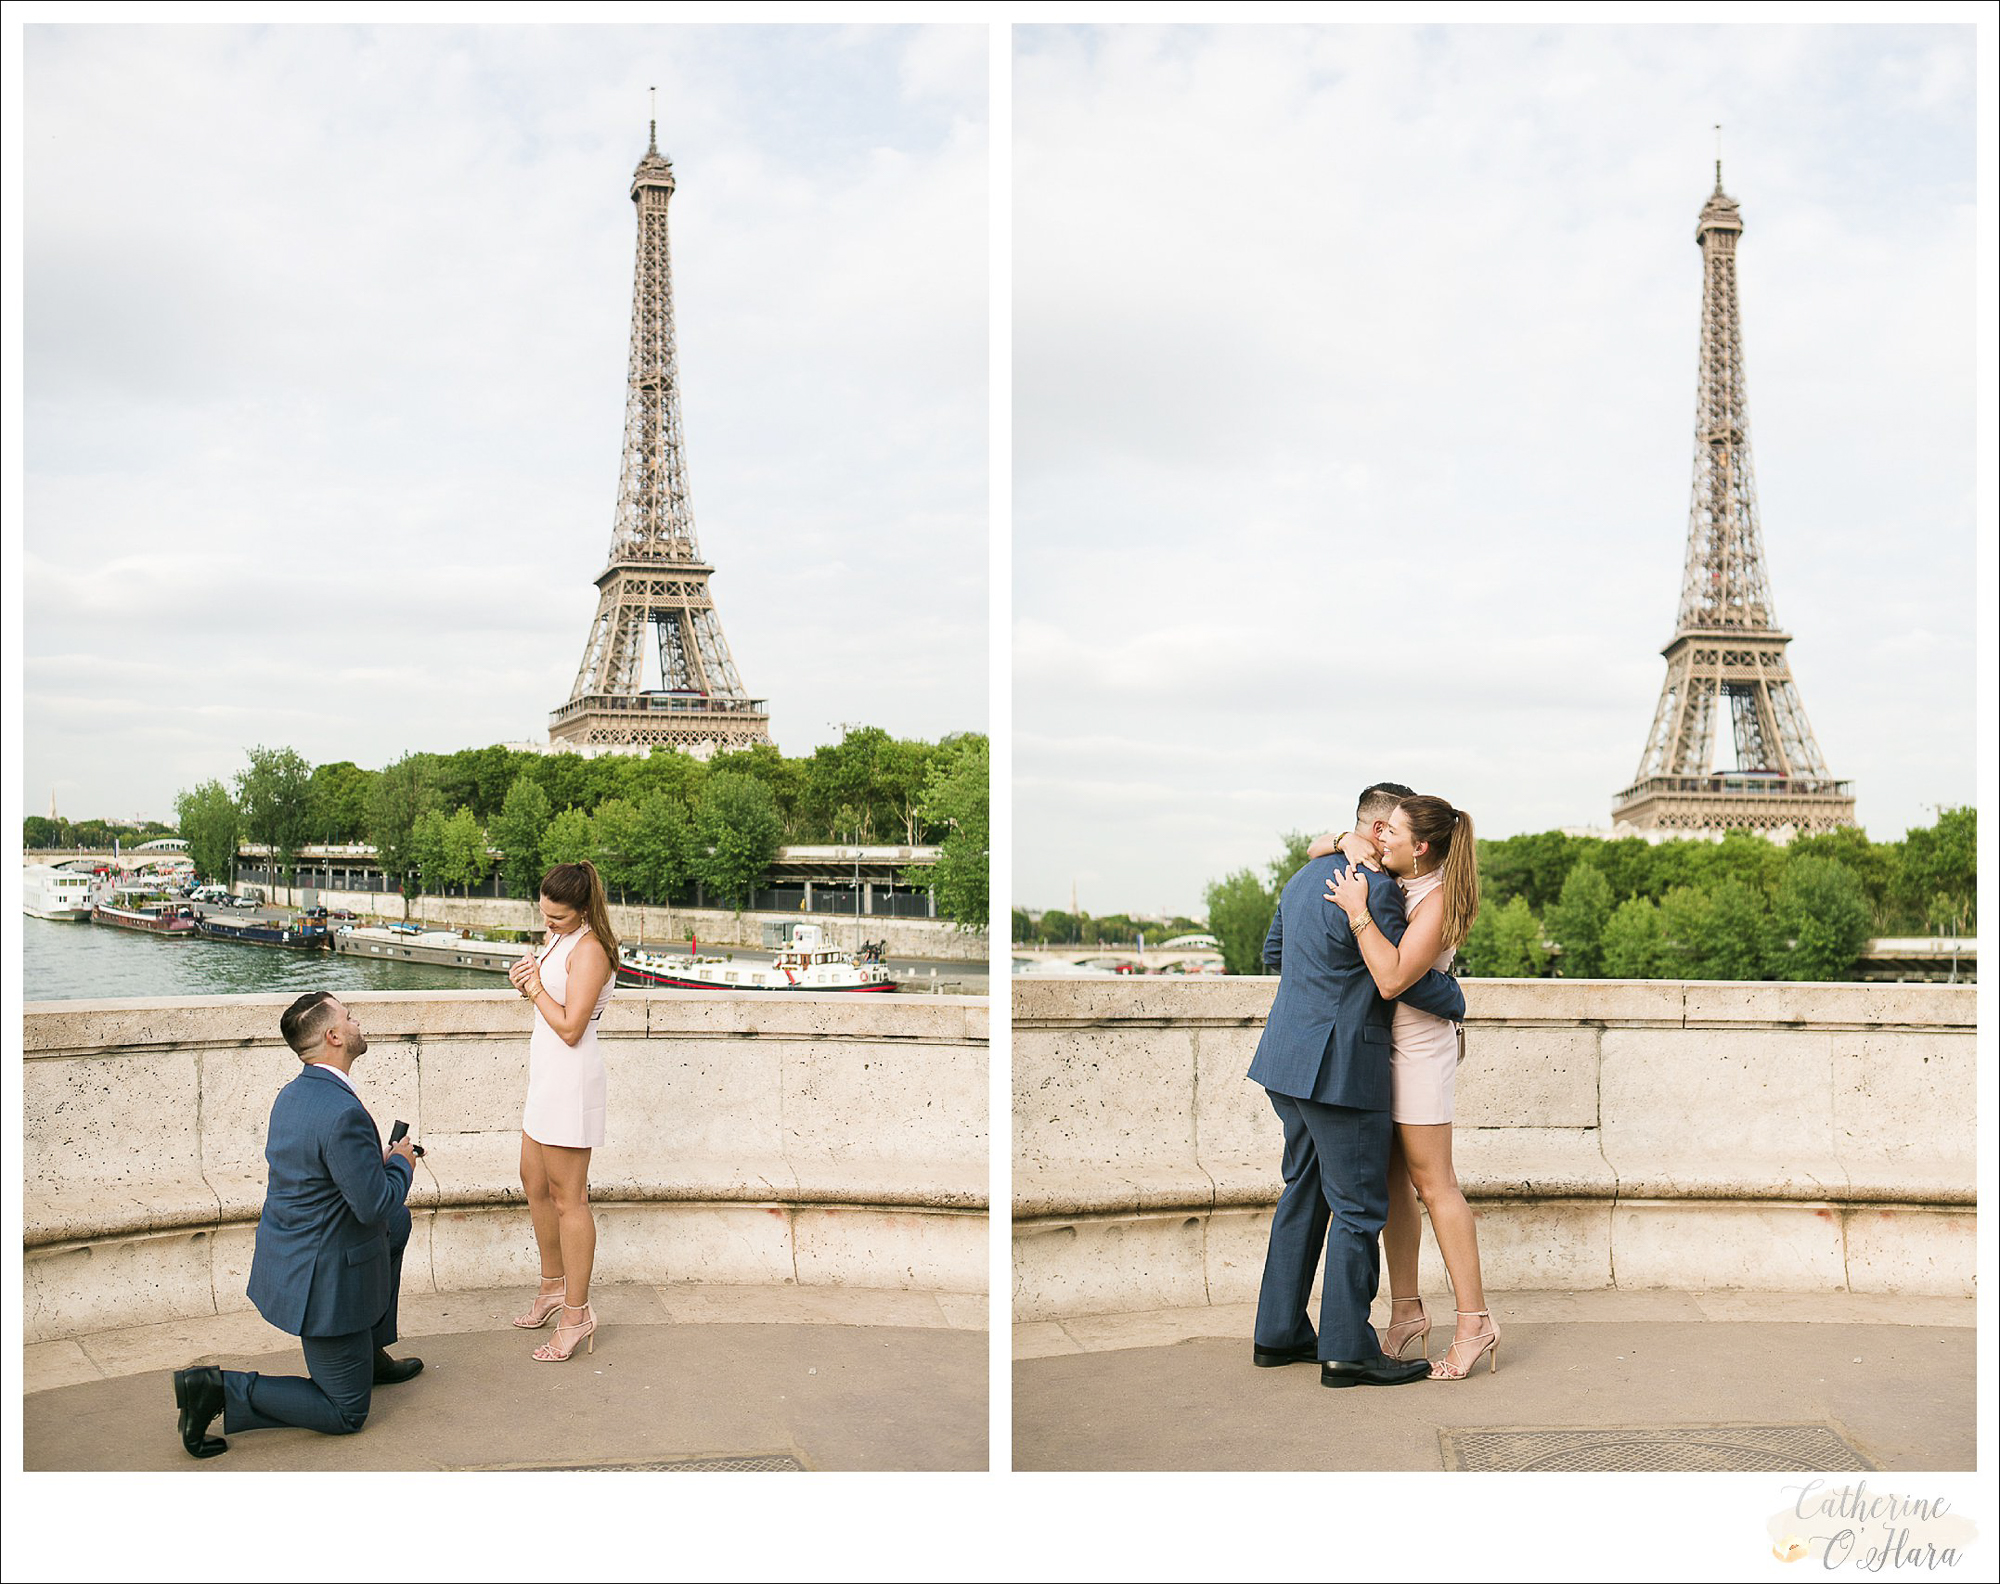 surprise proposal engagement photographer paris france-21.jpg